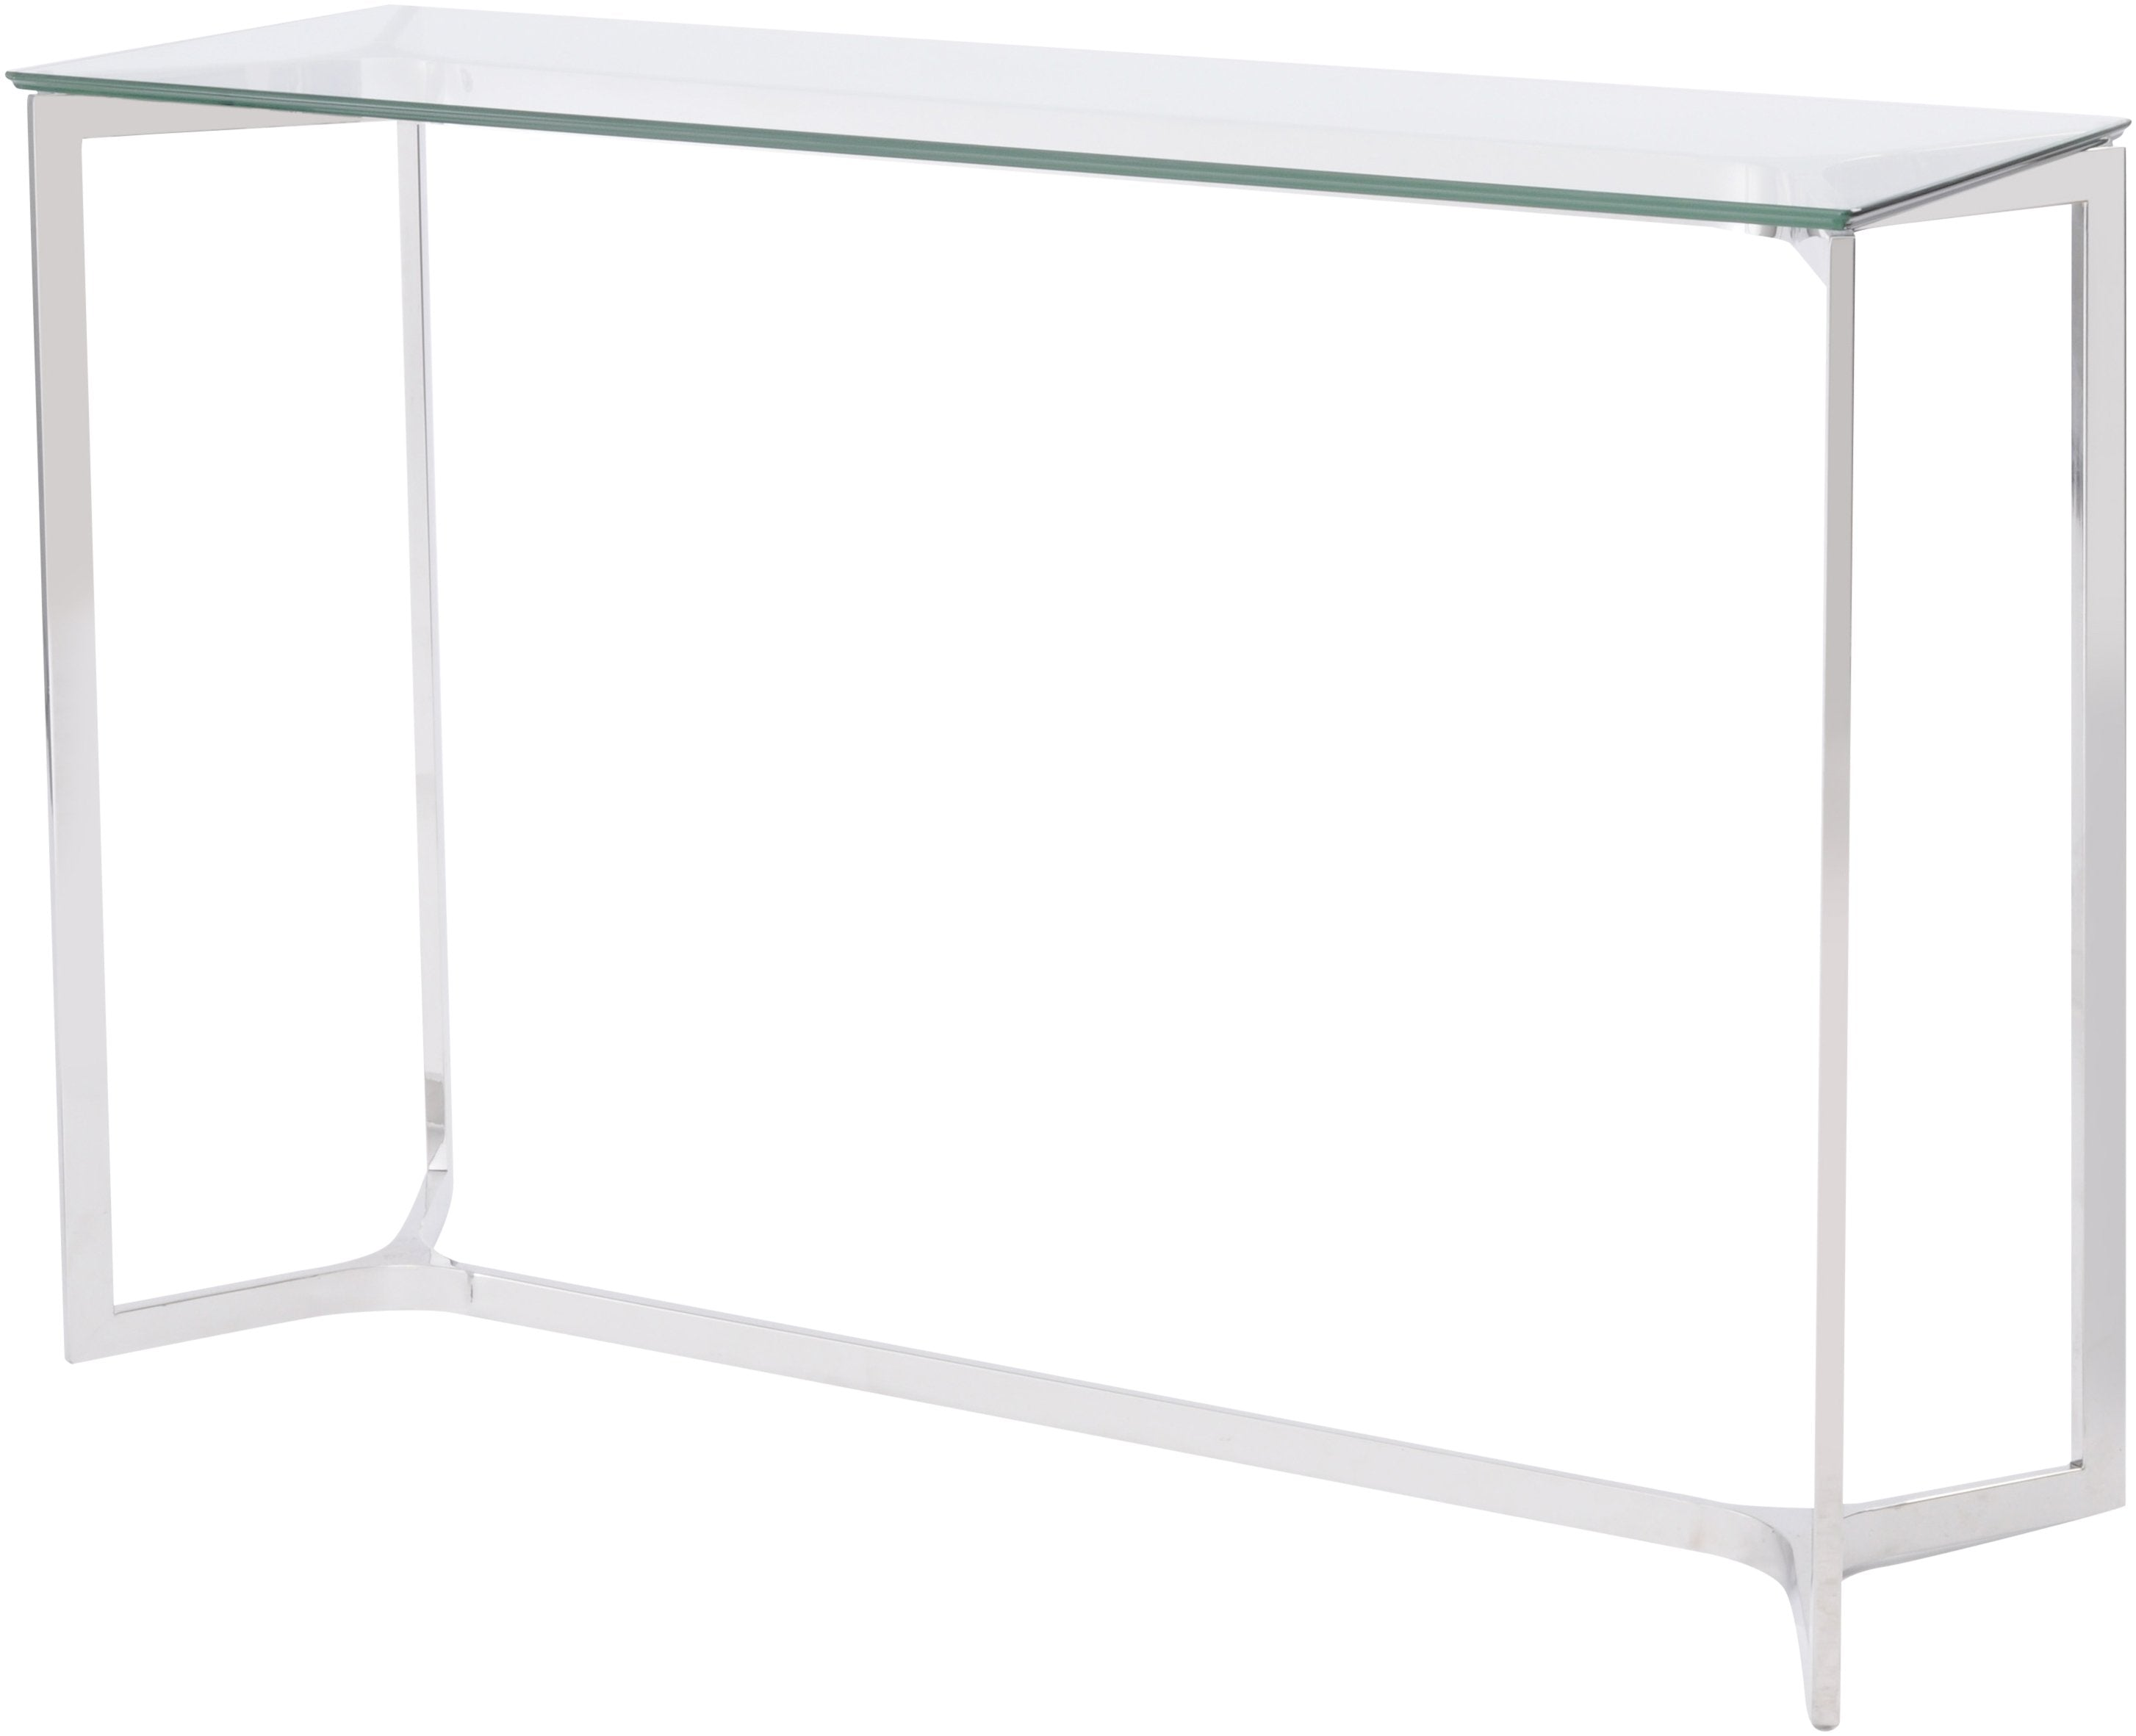 Linton Stainless Steel And Glass Console Table